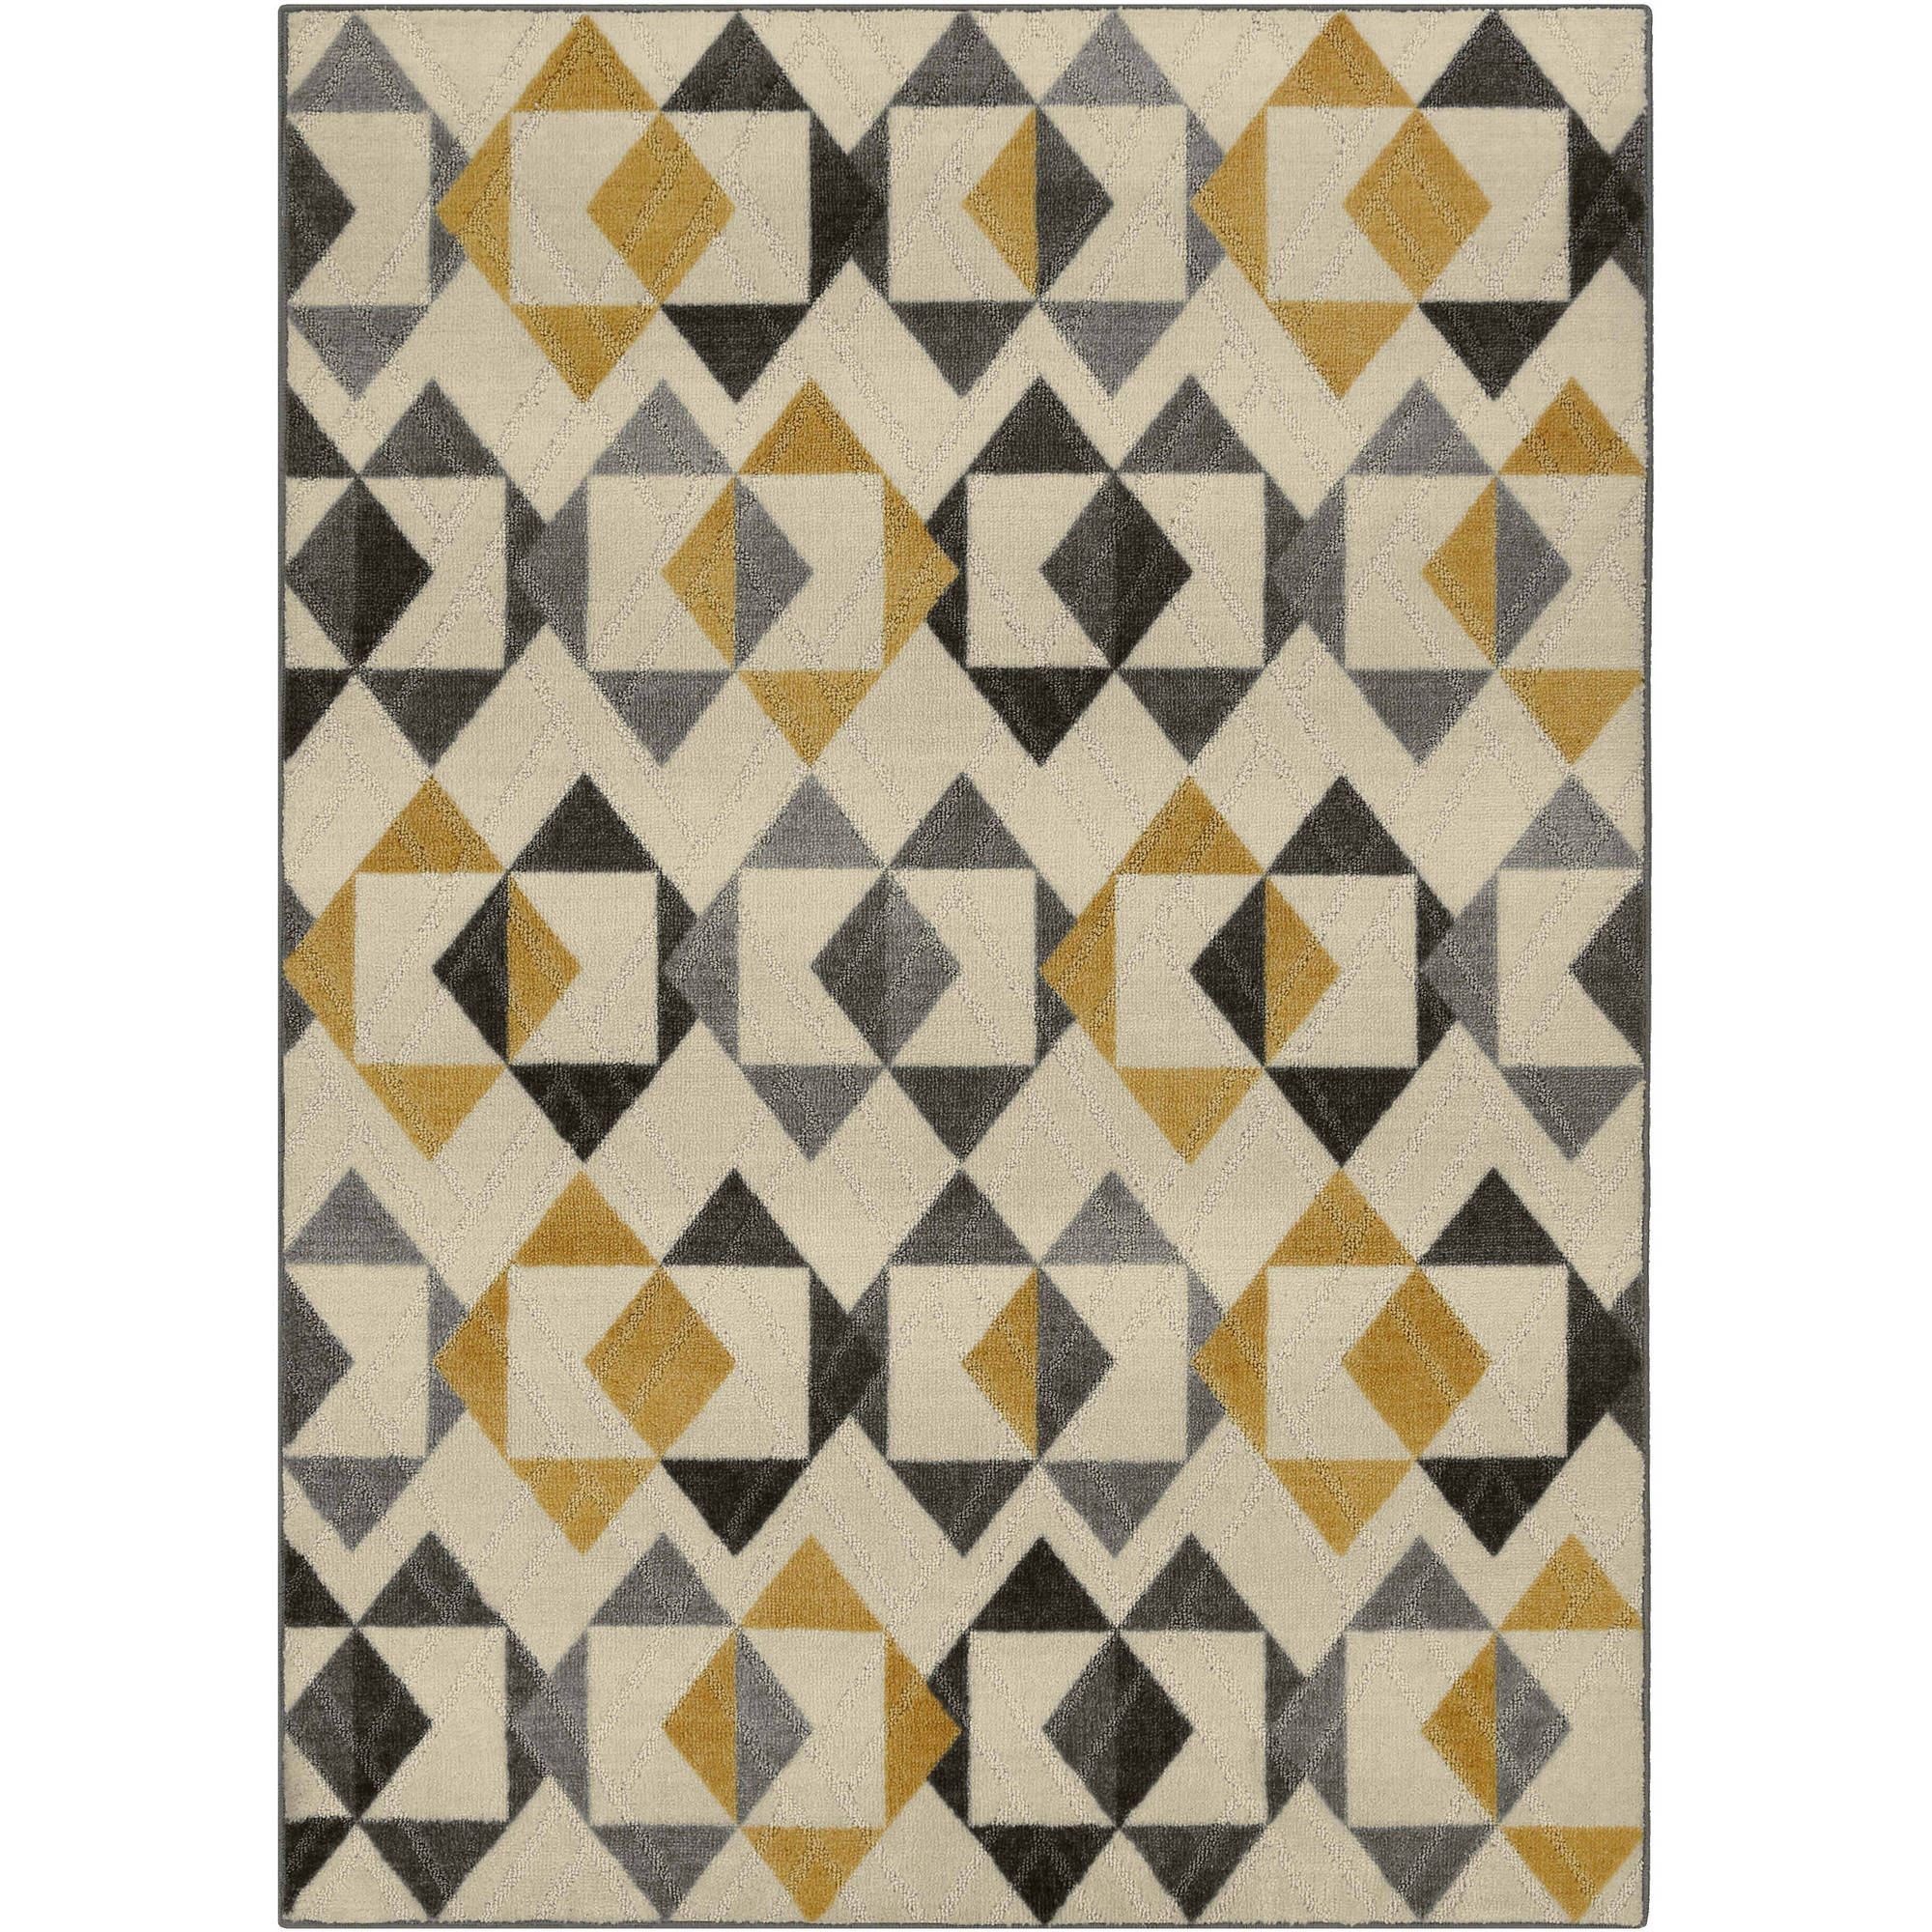 Better Homes And Gardens Rug Runners Rug Designs